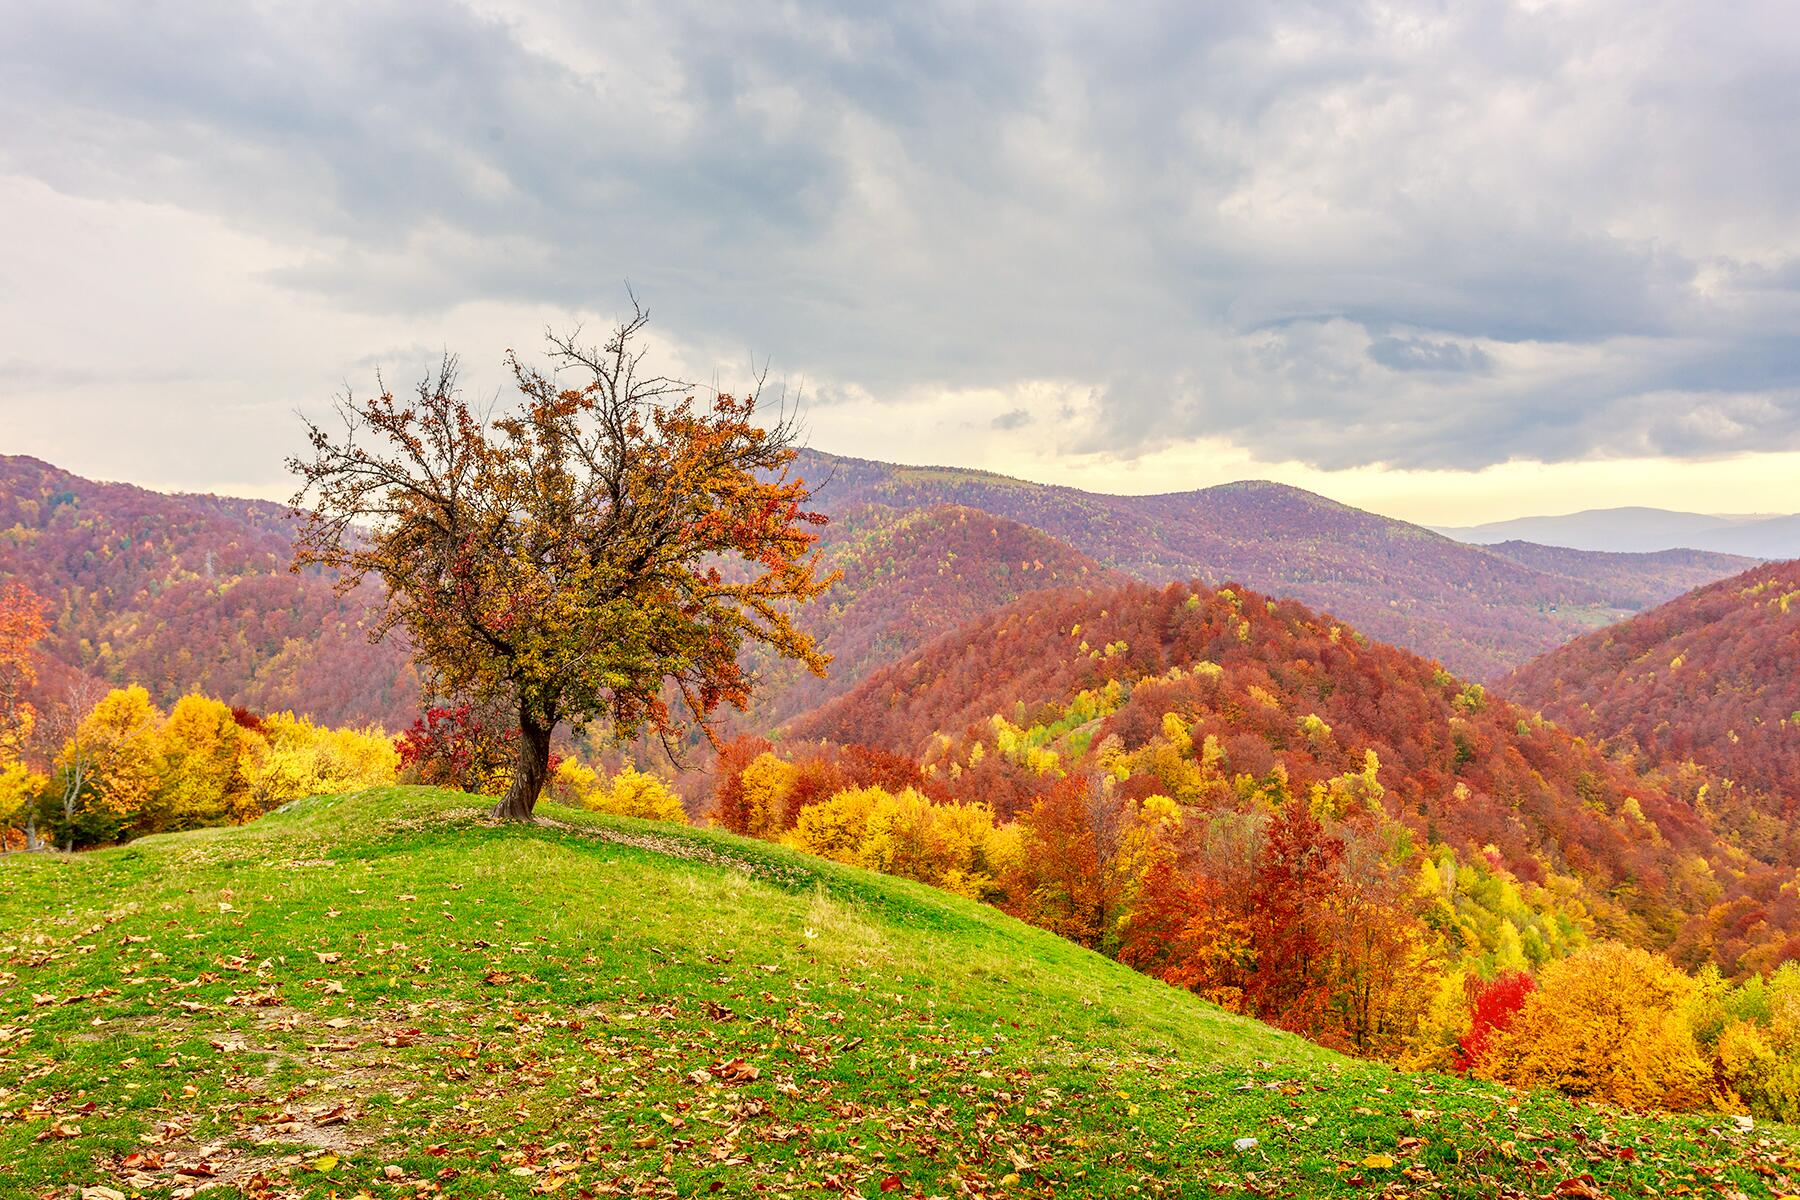 15 Unexpected Places With Great Fall Foliage